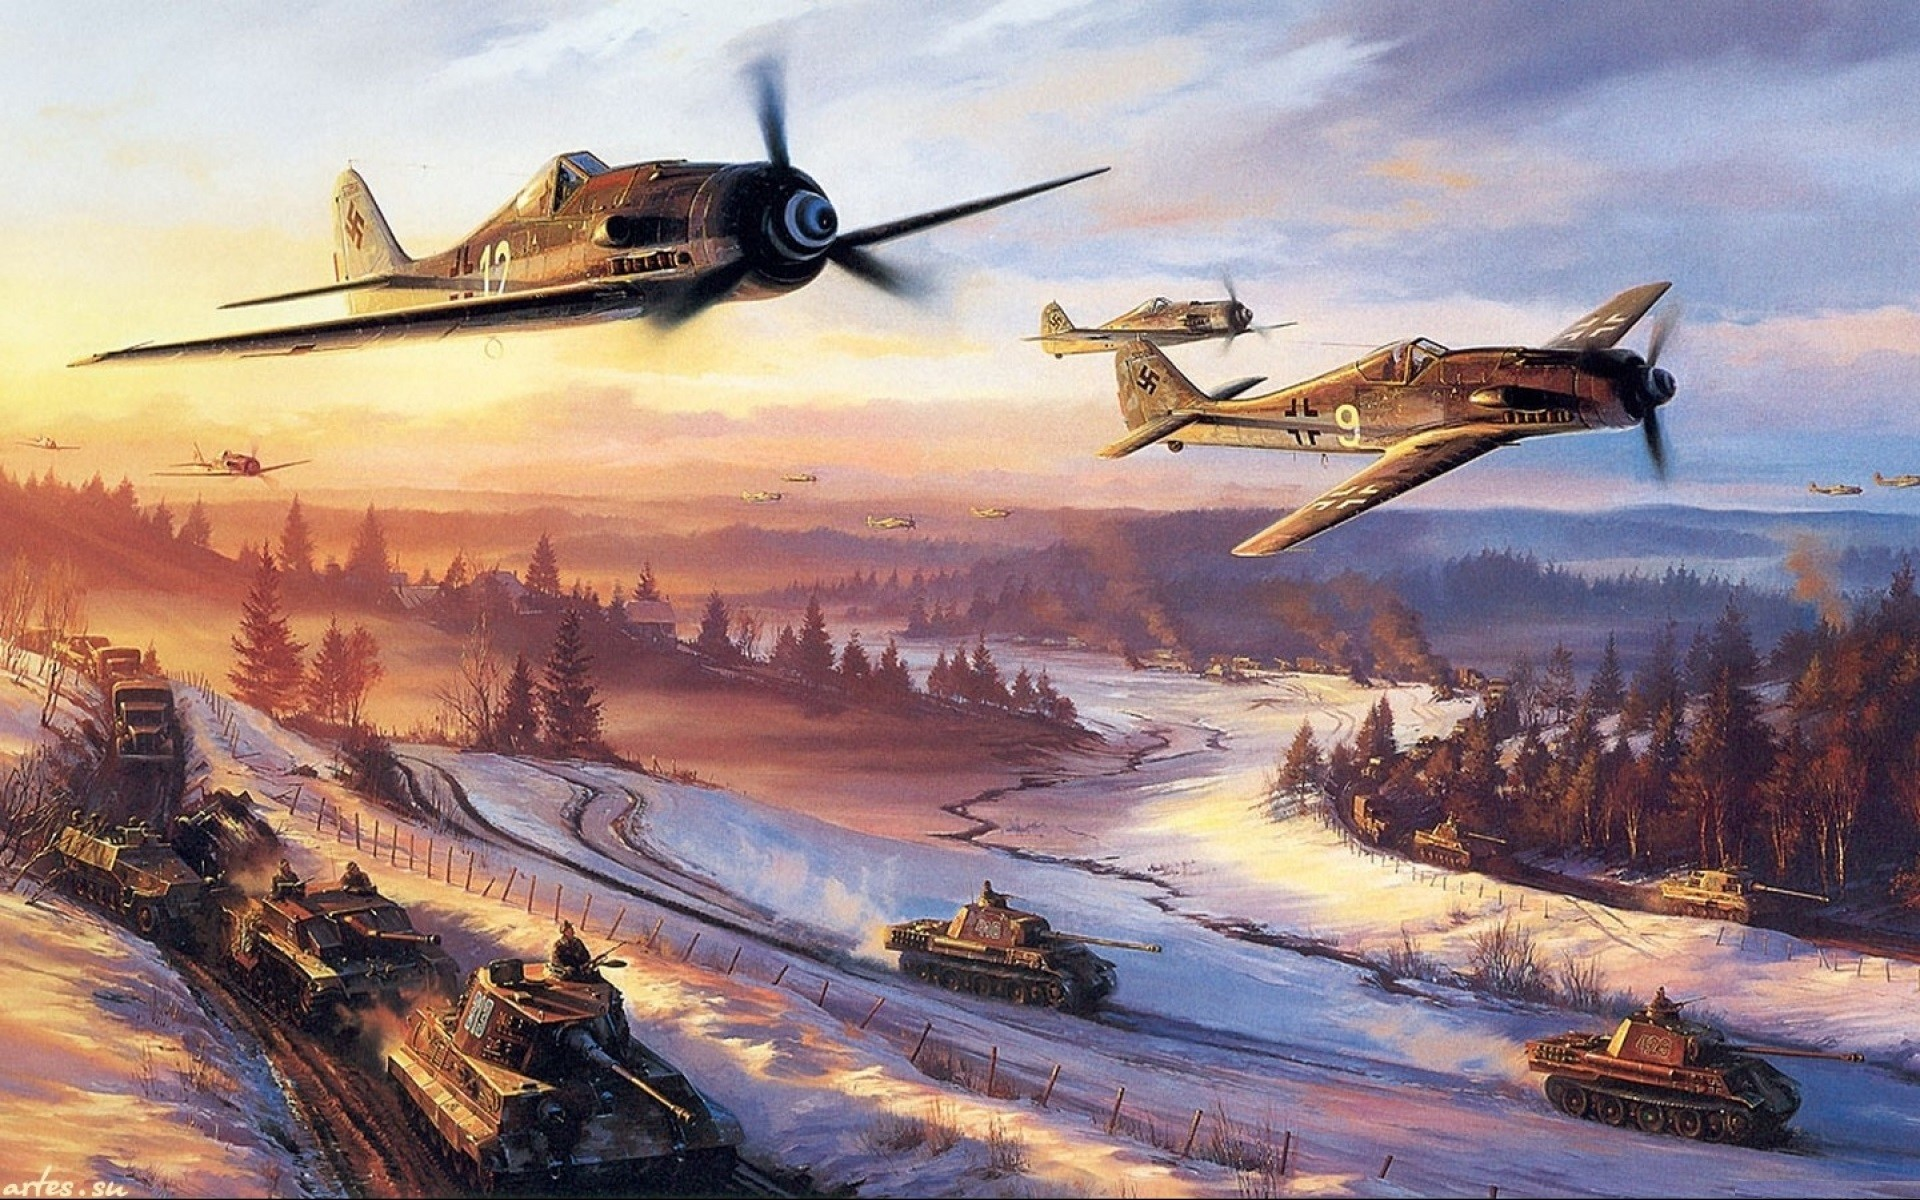 1920x1200 Awesome, Military, Aircraft, Wide, Hnew, Wallpaper, Aircraft, Free,  Beautiful, Desktop, Images, Free Wallpapers, Amazing, High Quality,  1920×1200 Wallpaper ...